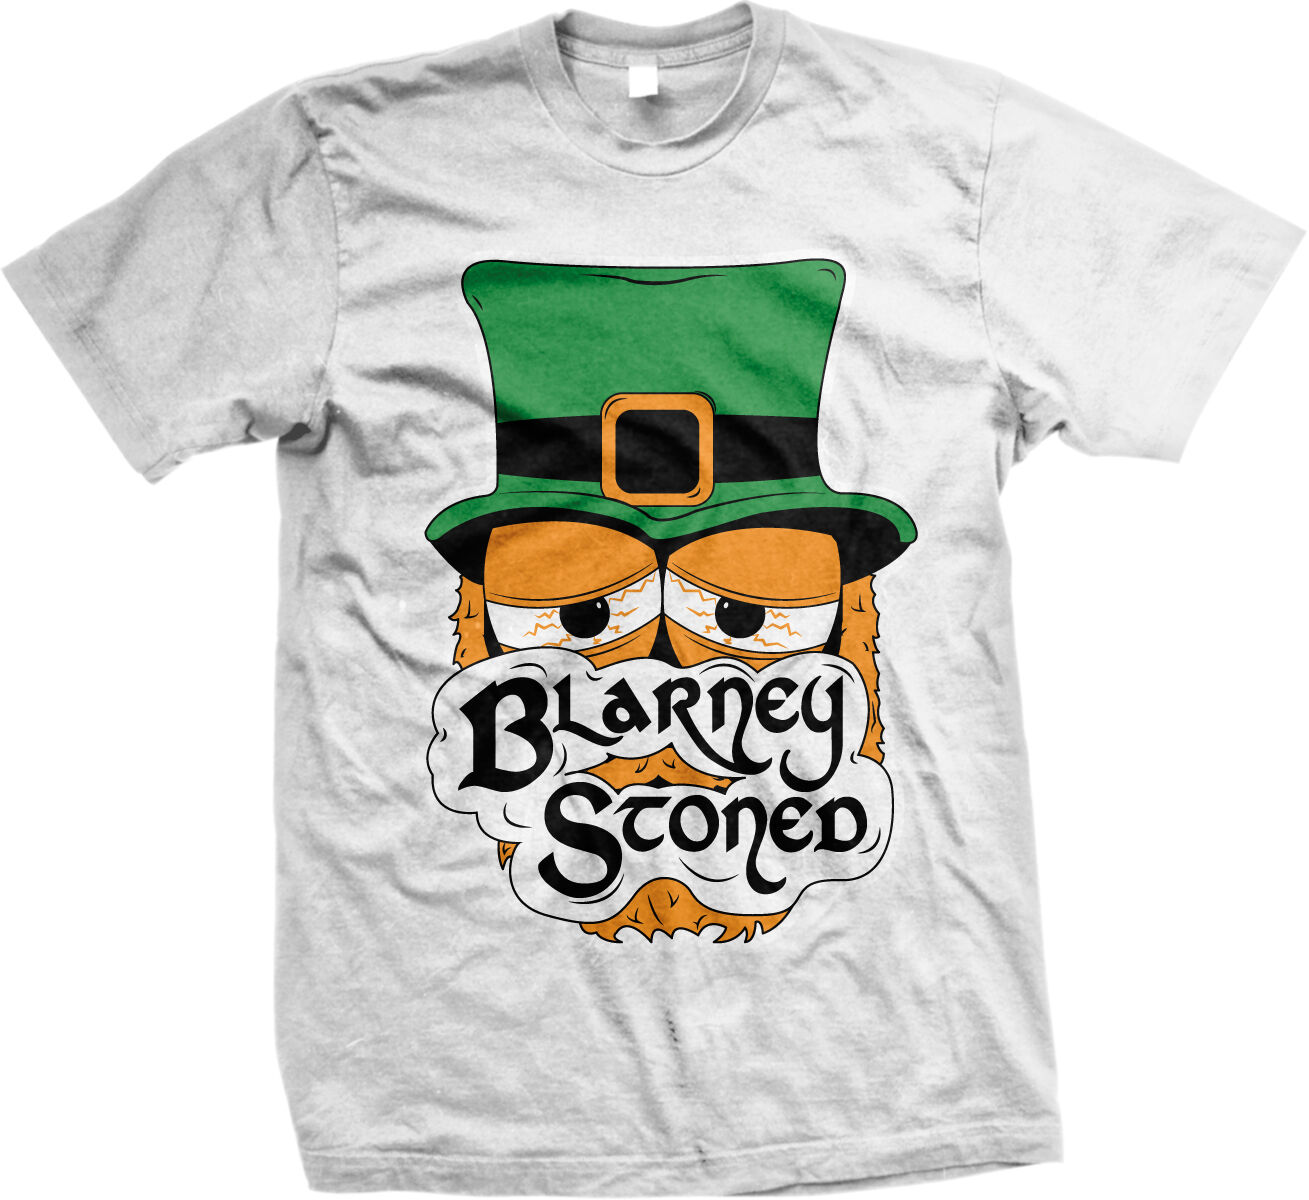 Blarney Stoned Irish Weed Marijuana Pot Smoke High Patrick's Day Men's T-Shirt 1